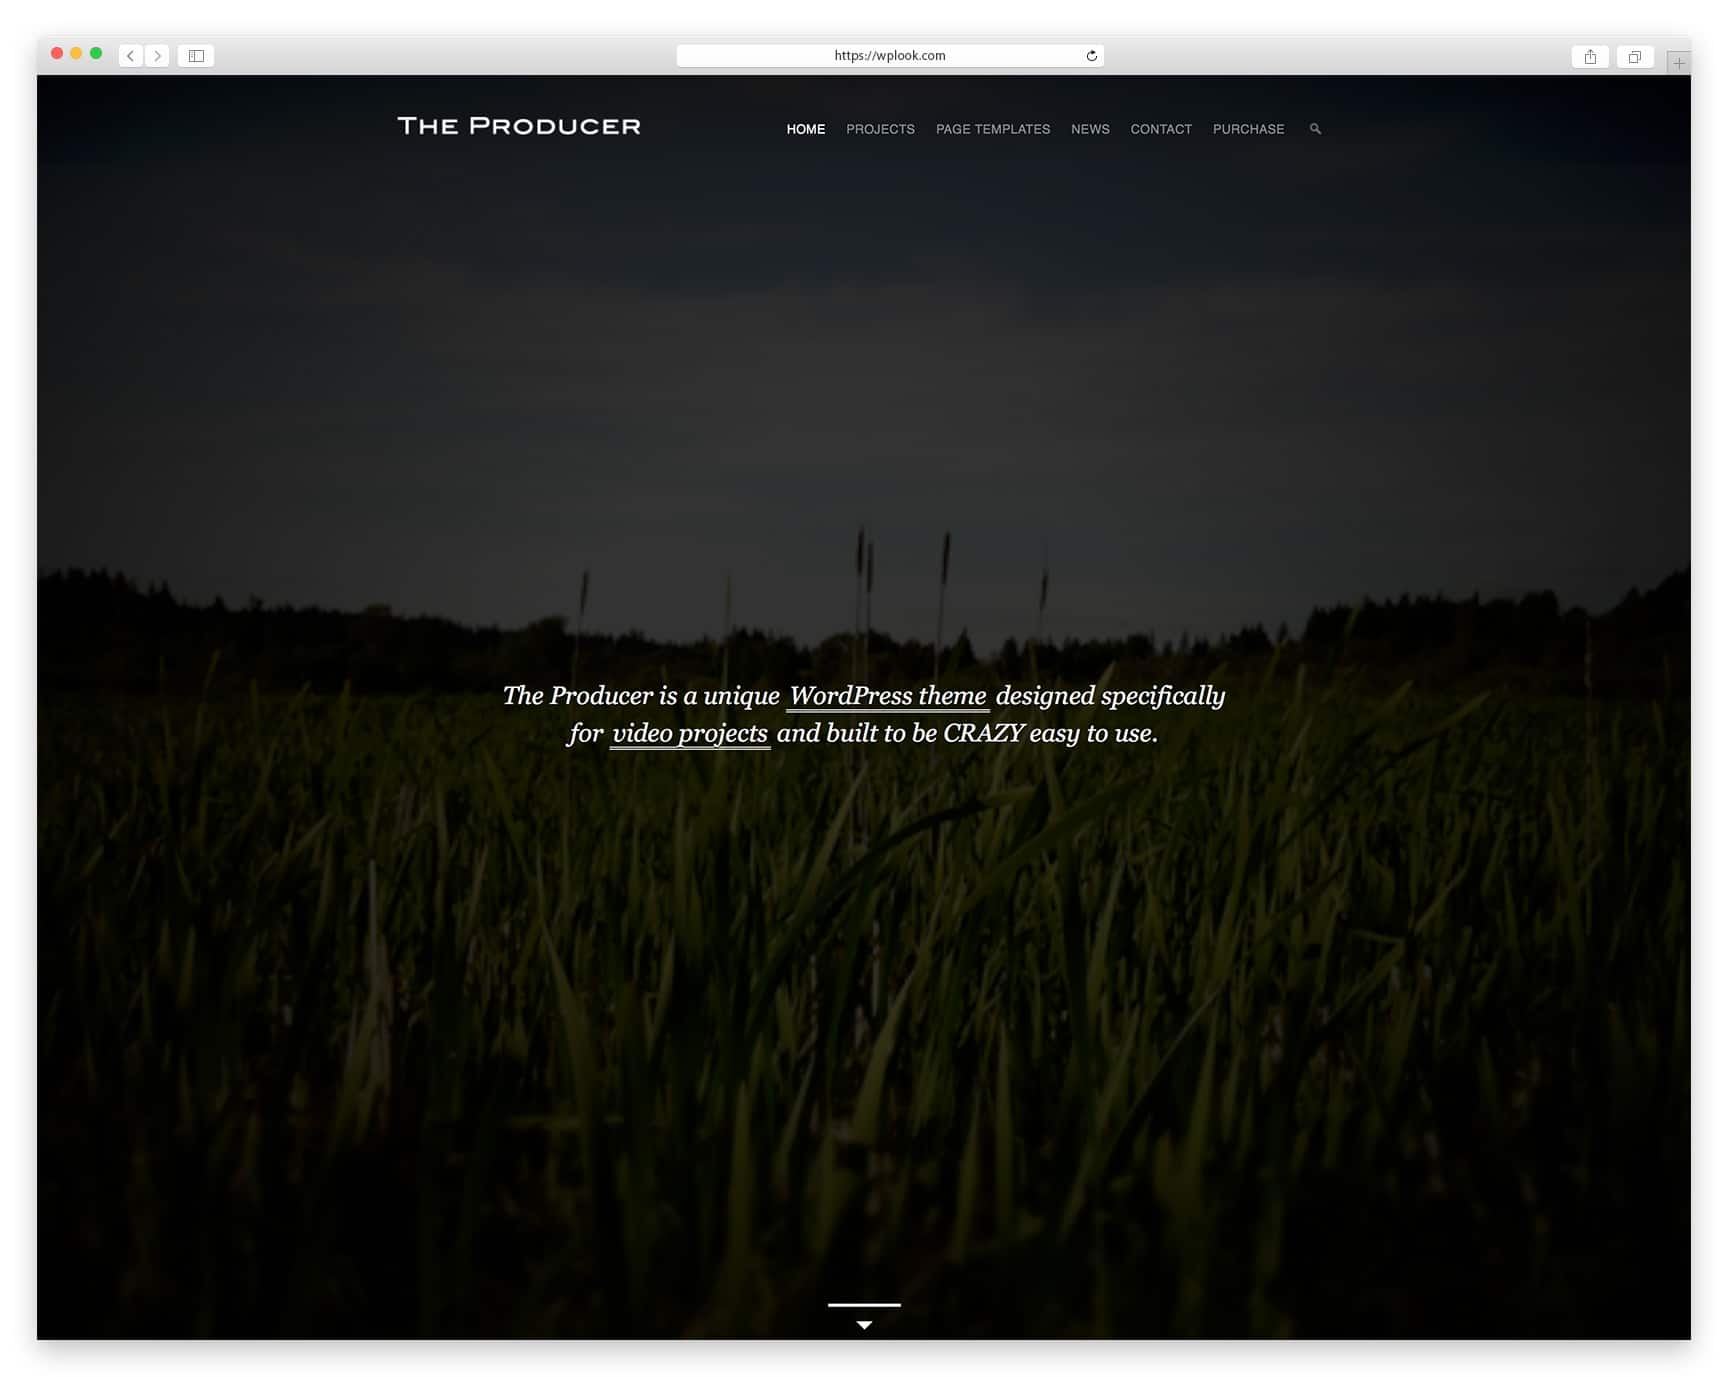 11 Best WordPress Themes for makers 2018 WPlook Themes